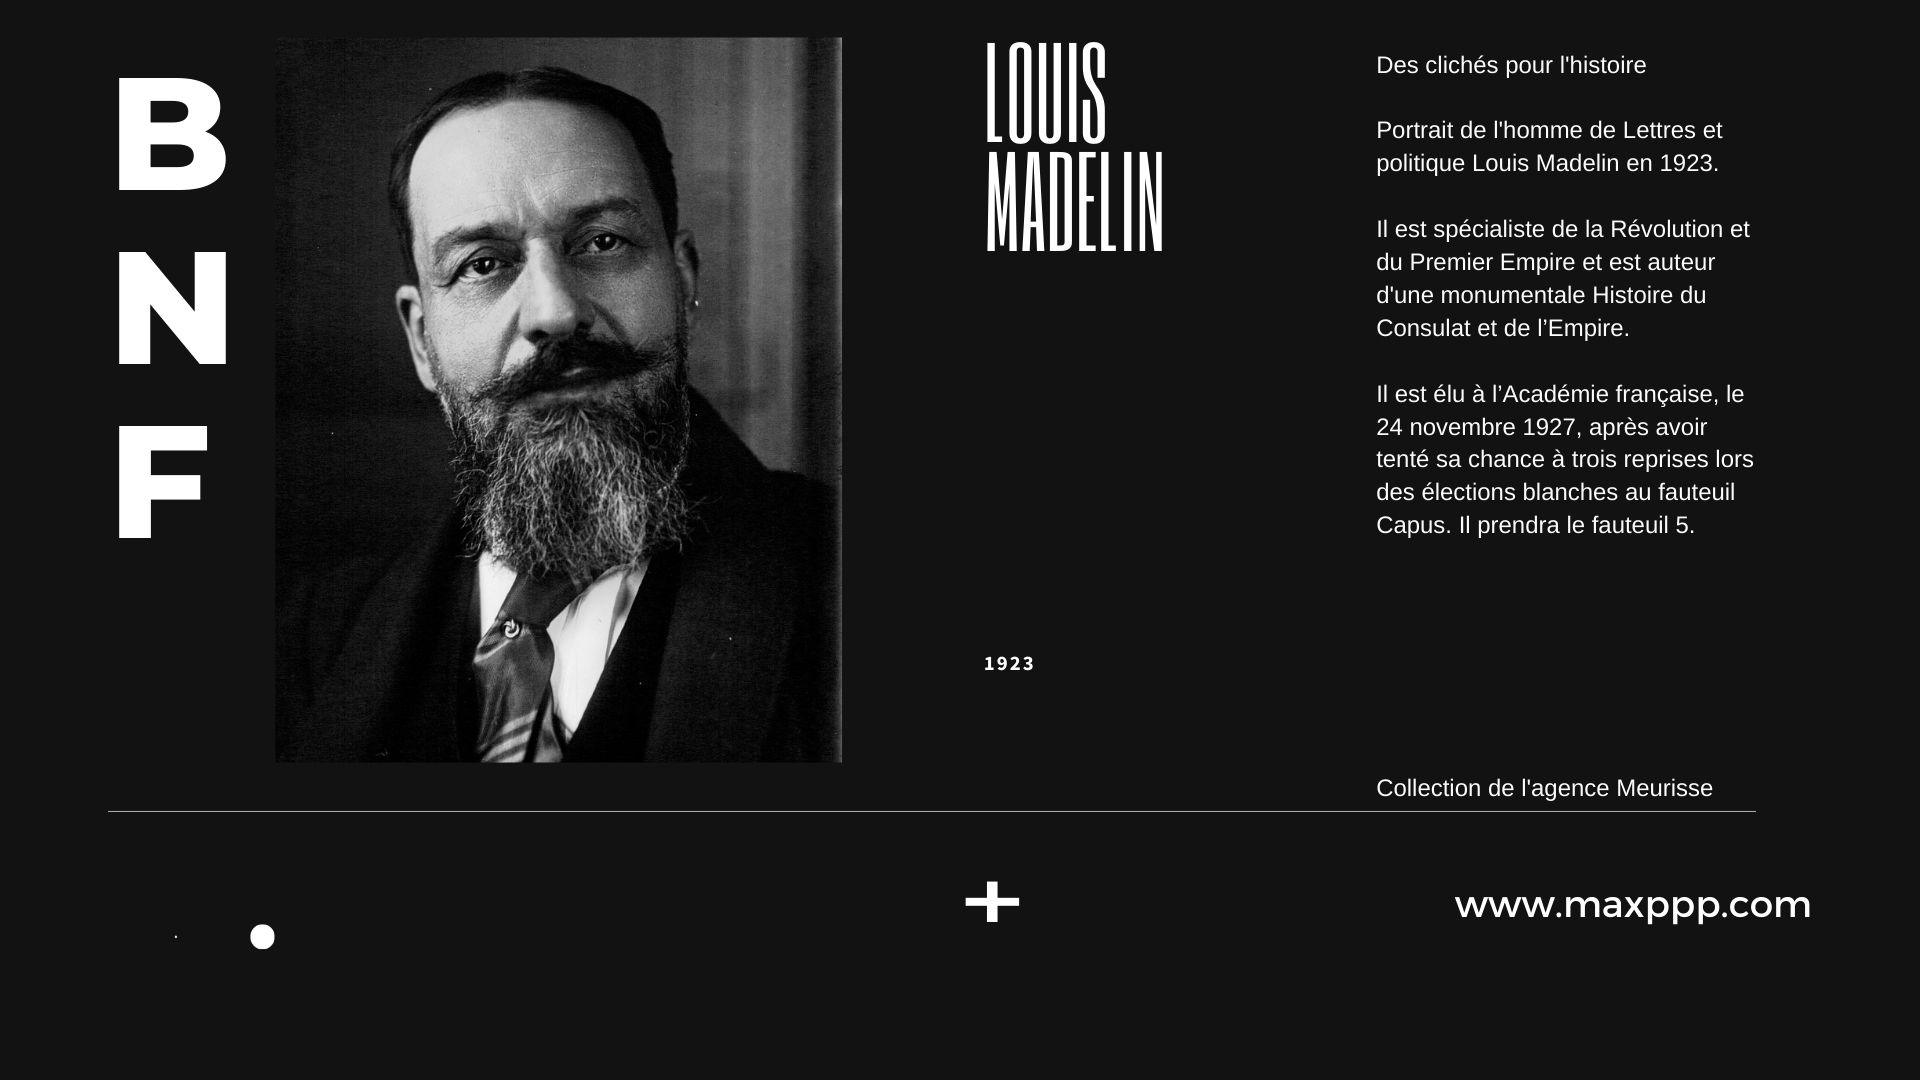 Louis Madelin